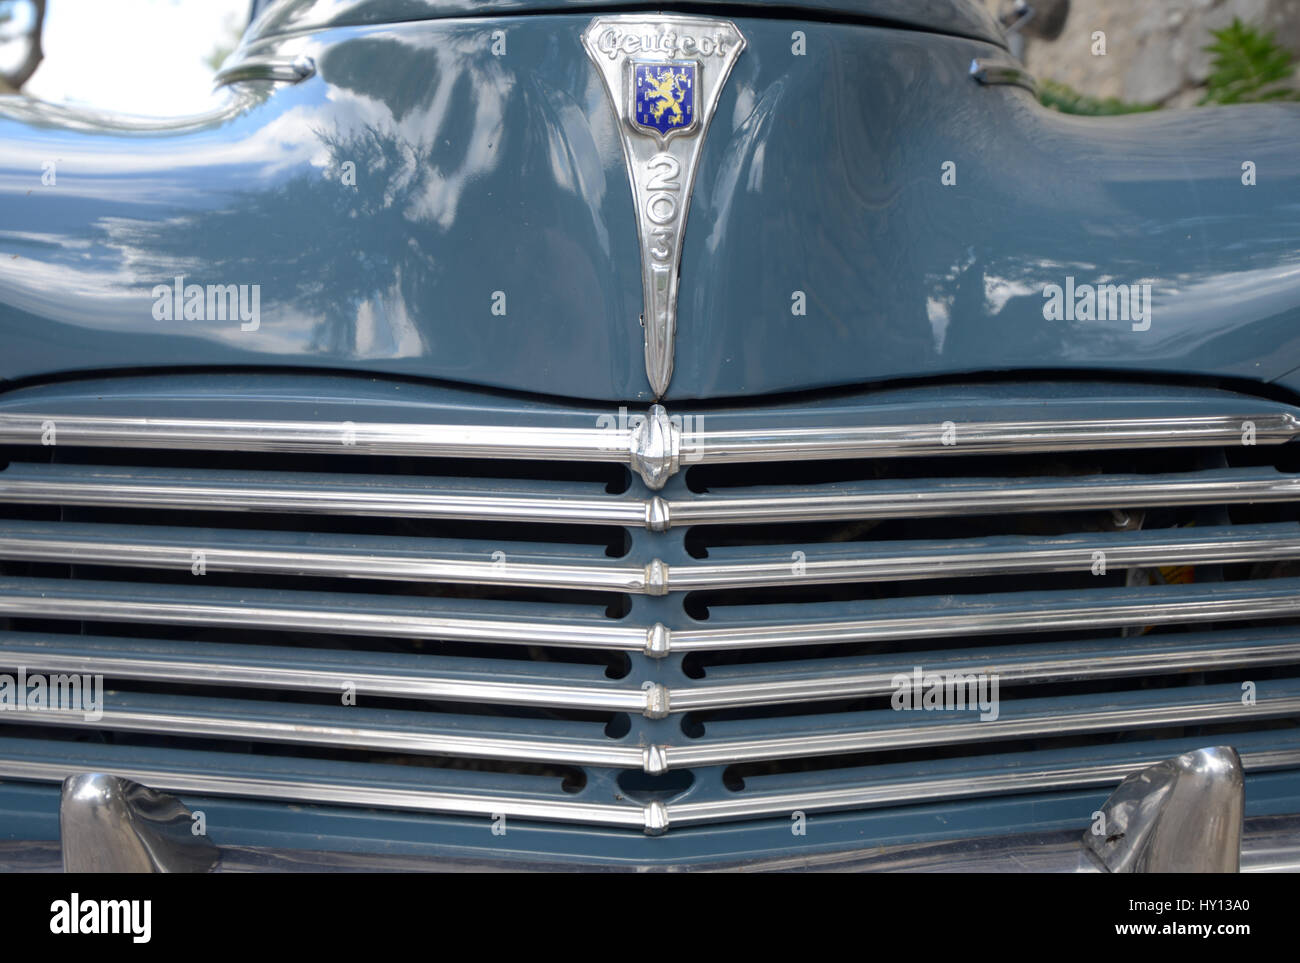 Radiator Grille or Grill of a French Veteran or Vintage Peugeot 203 Car or Automobile Produced in France Between - Stock Image